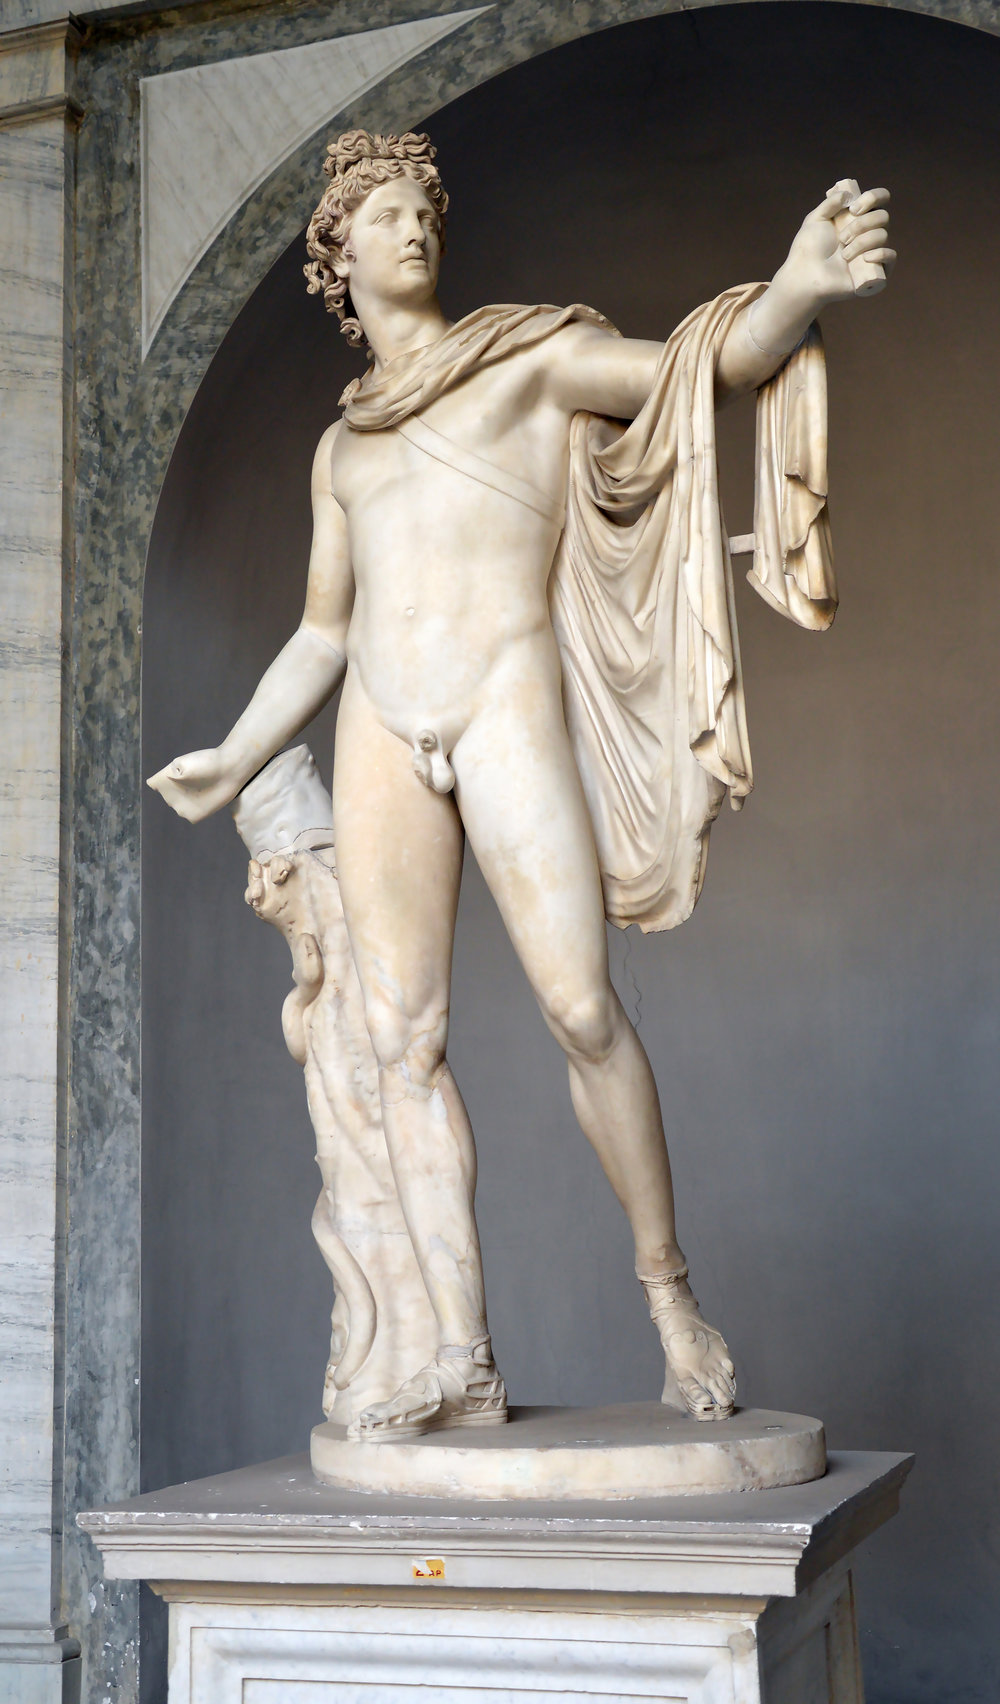 The 18th-century art historian Johann Joachim Winckelmann pronounced the Apollo Belvedere – a Roman copy of a Greek statue – the perfect work of art. While no human body can match its classical proportions, we should all make the best of what we've got as an expression of who we are – not some societal standard.